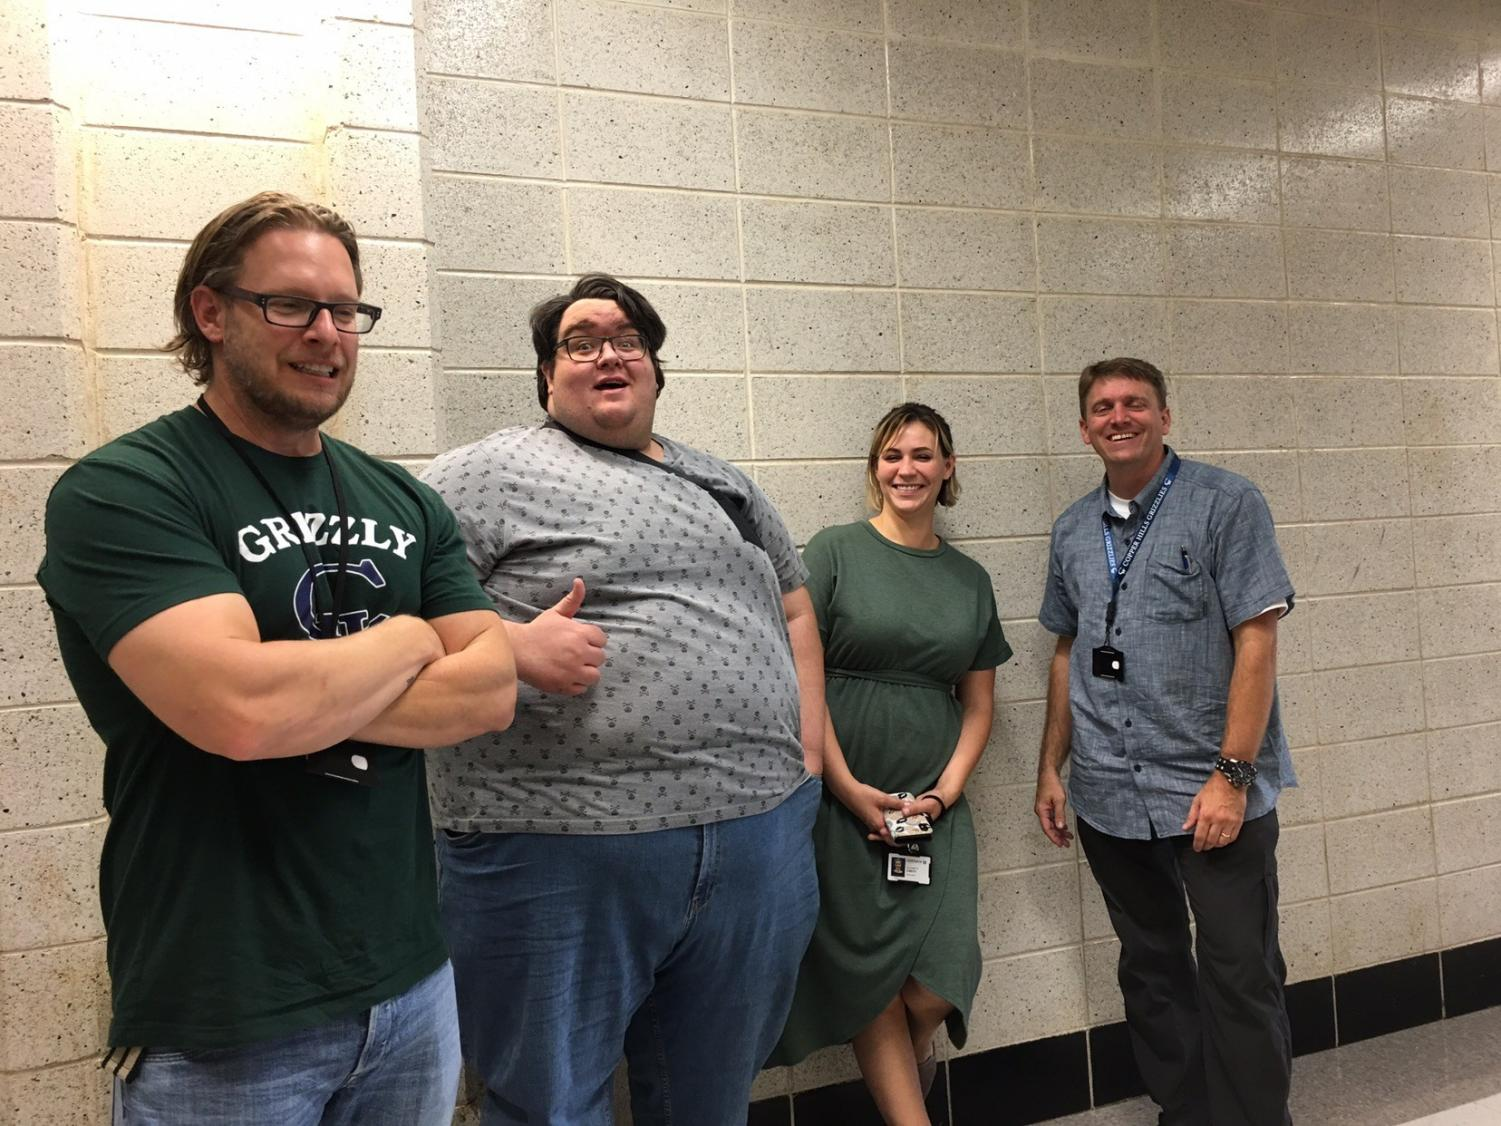 Mr. James, Mr. Atkins, Ms. Emery, and Mr. Waddoups